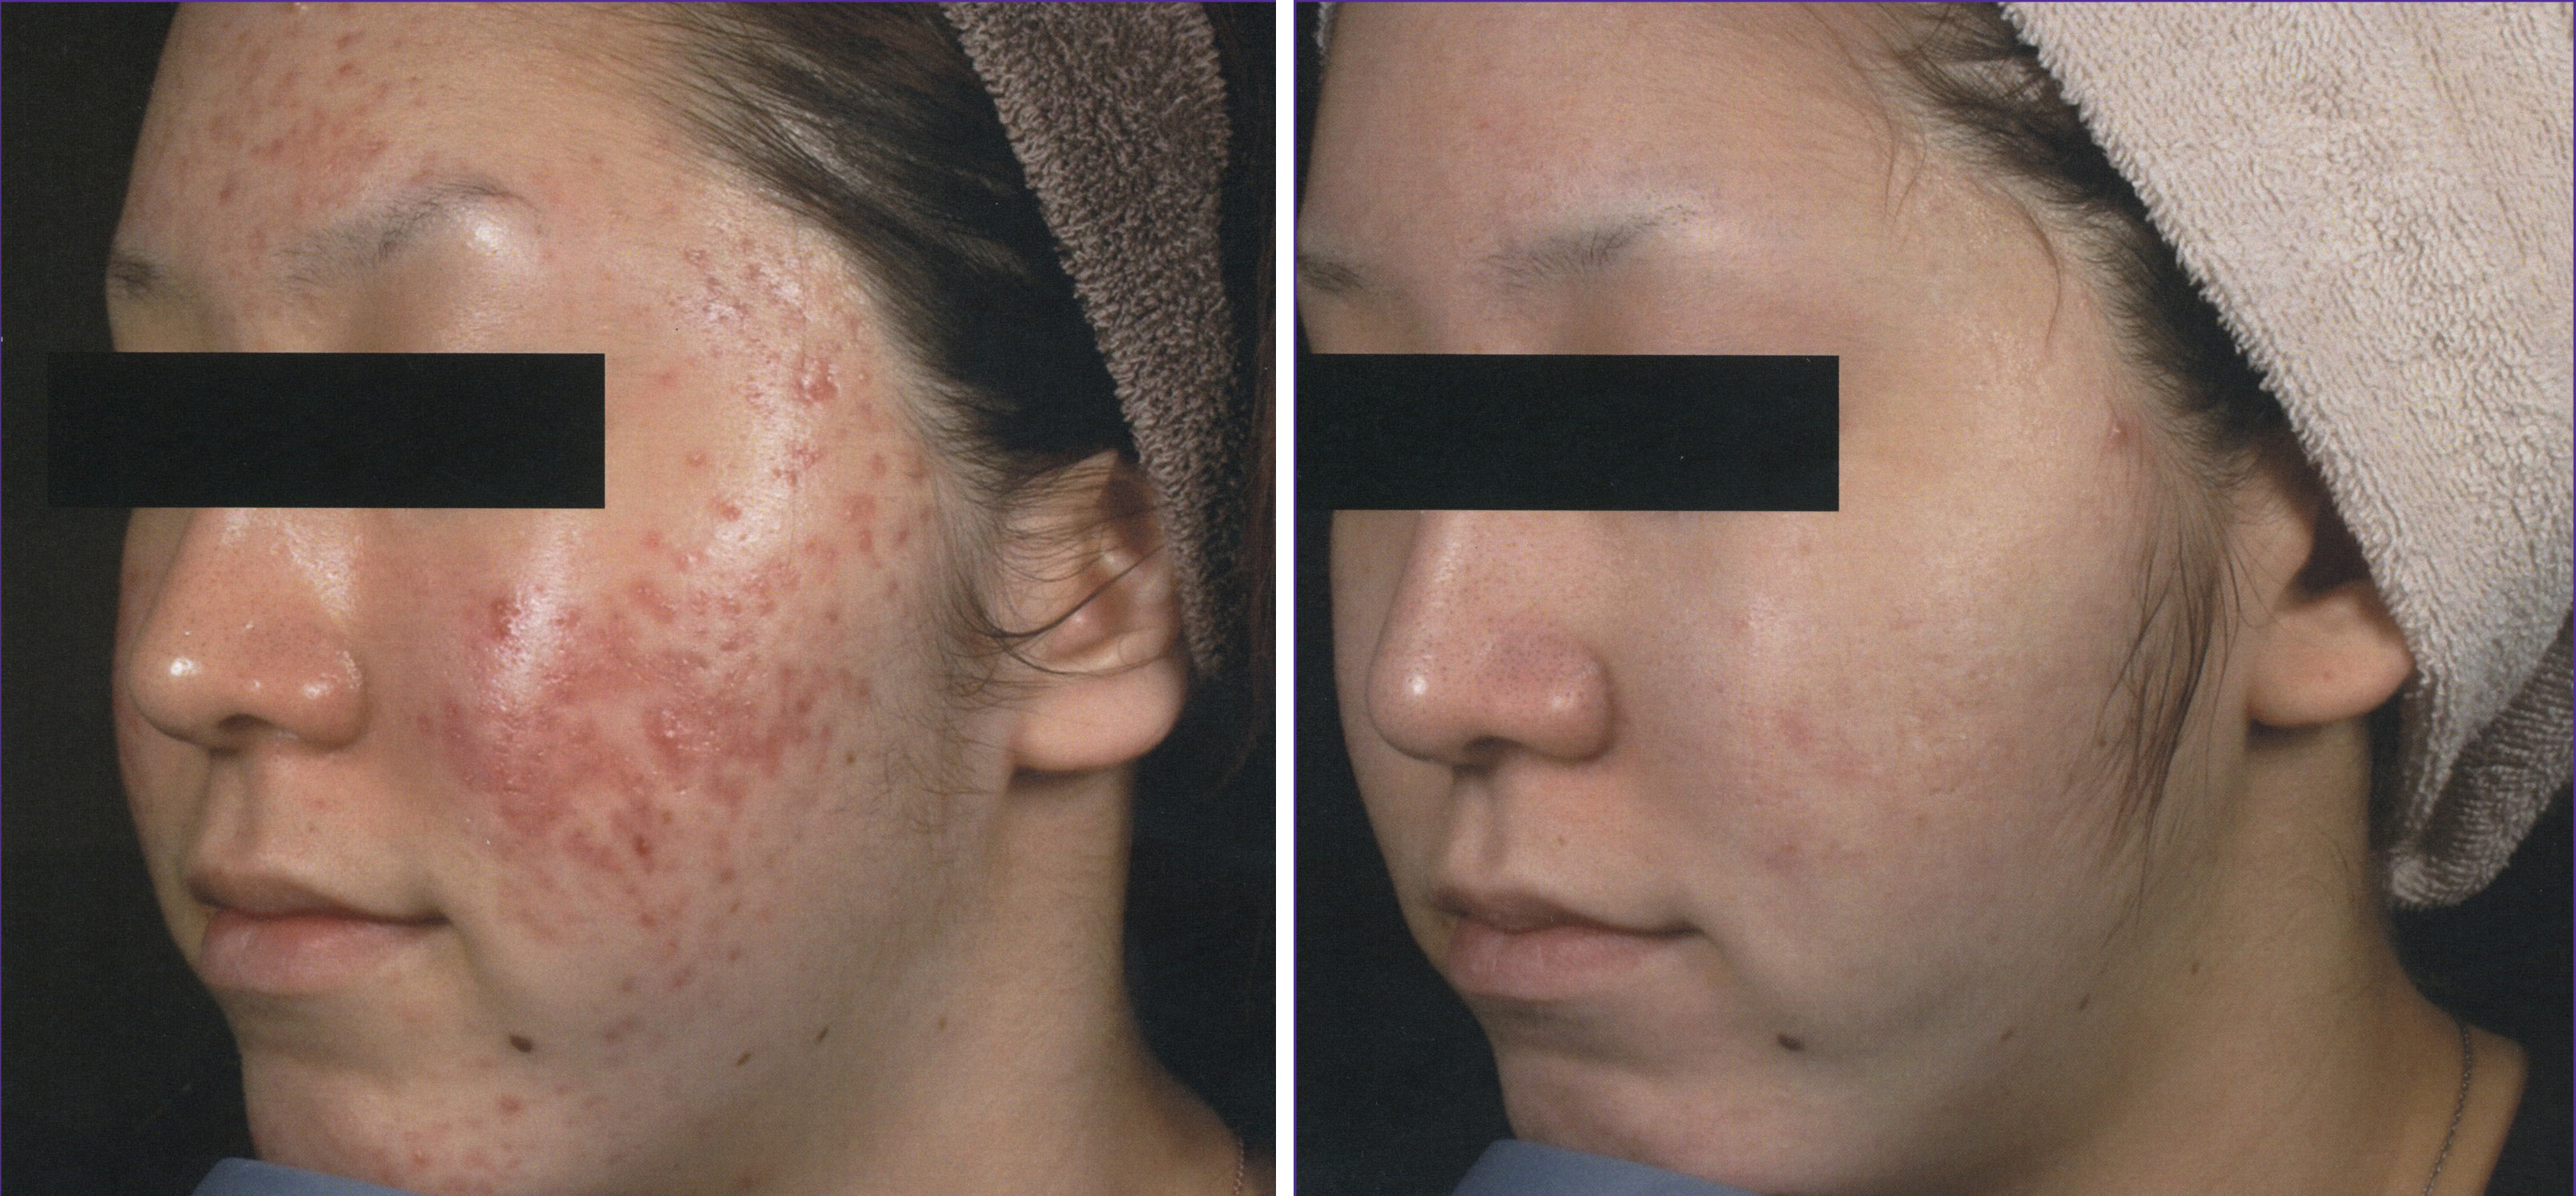 Intensif Microneedling for Acne Scars Before and After 3